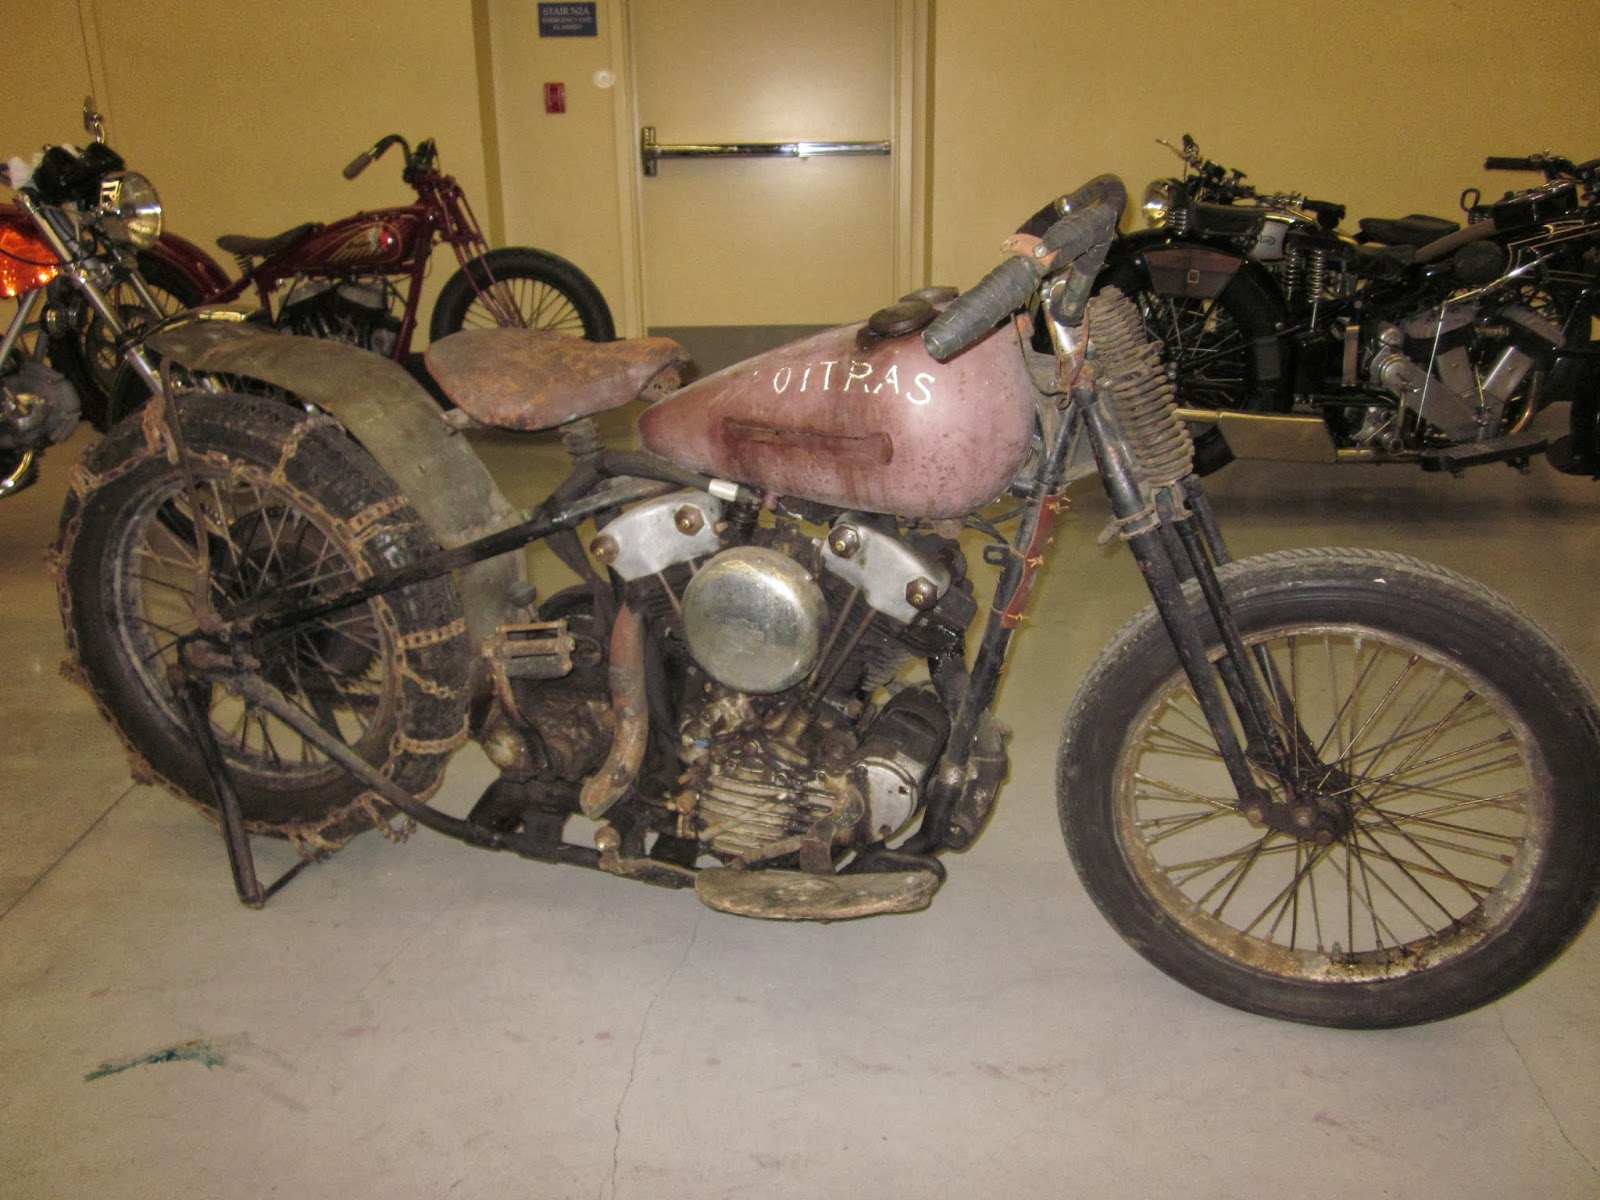 Barber Motorcycle Museum >> OldMotoDude: 1942 Harley Davidson Hill Climber on display